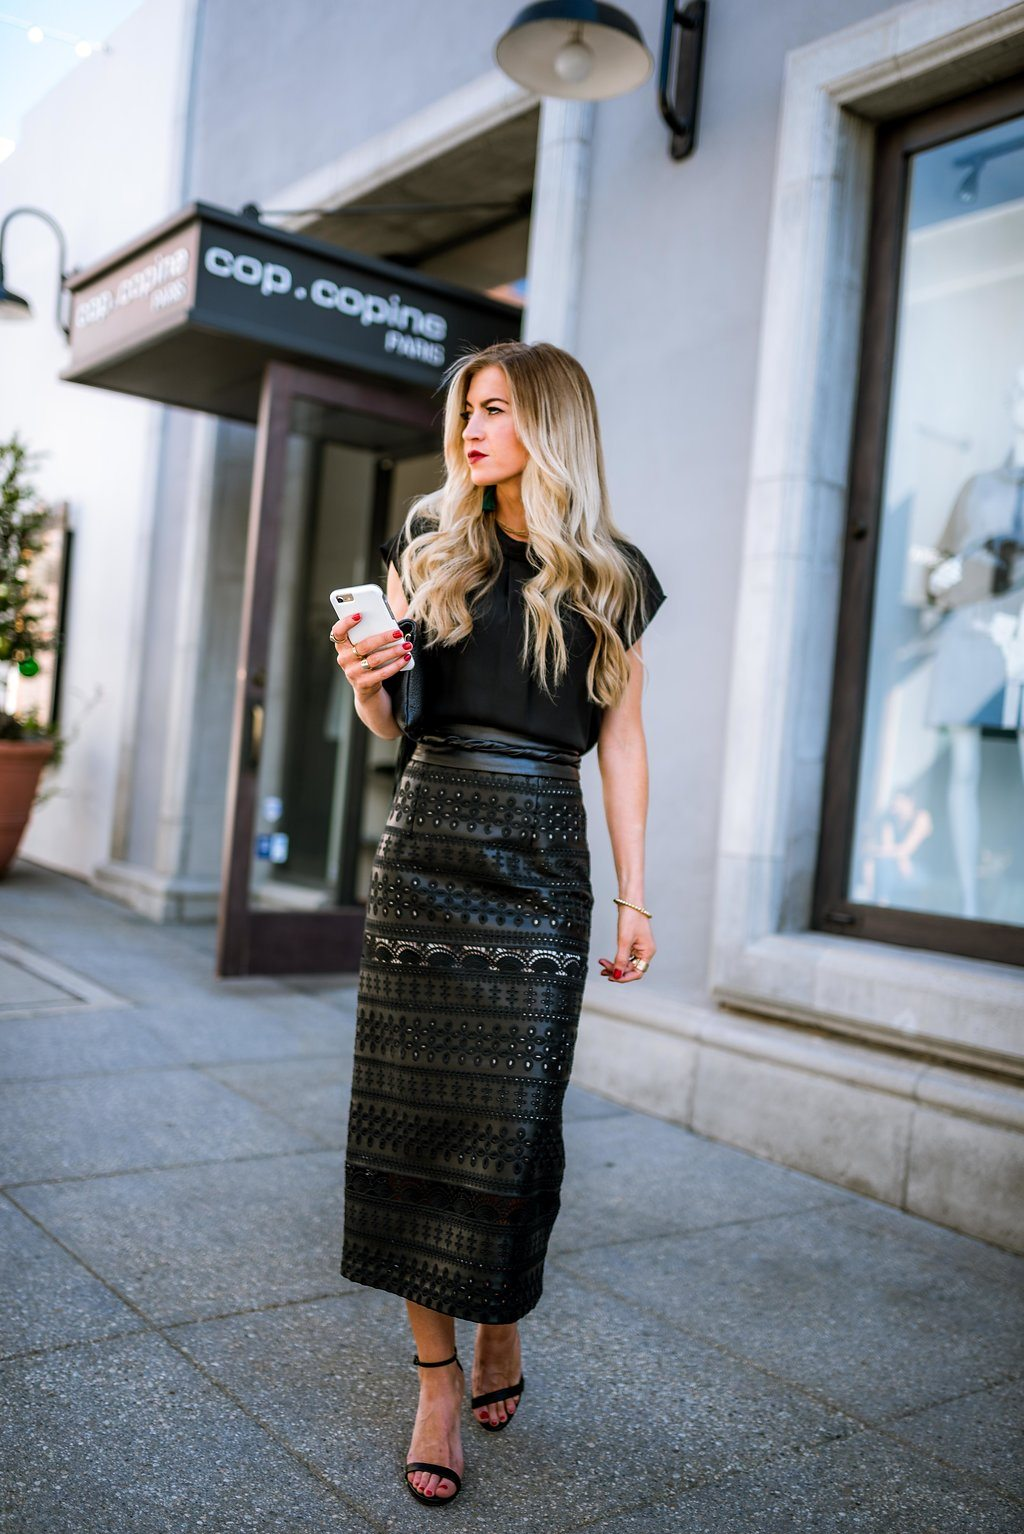 Black laser cut pencil skirt + emerald earrings